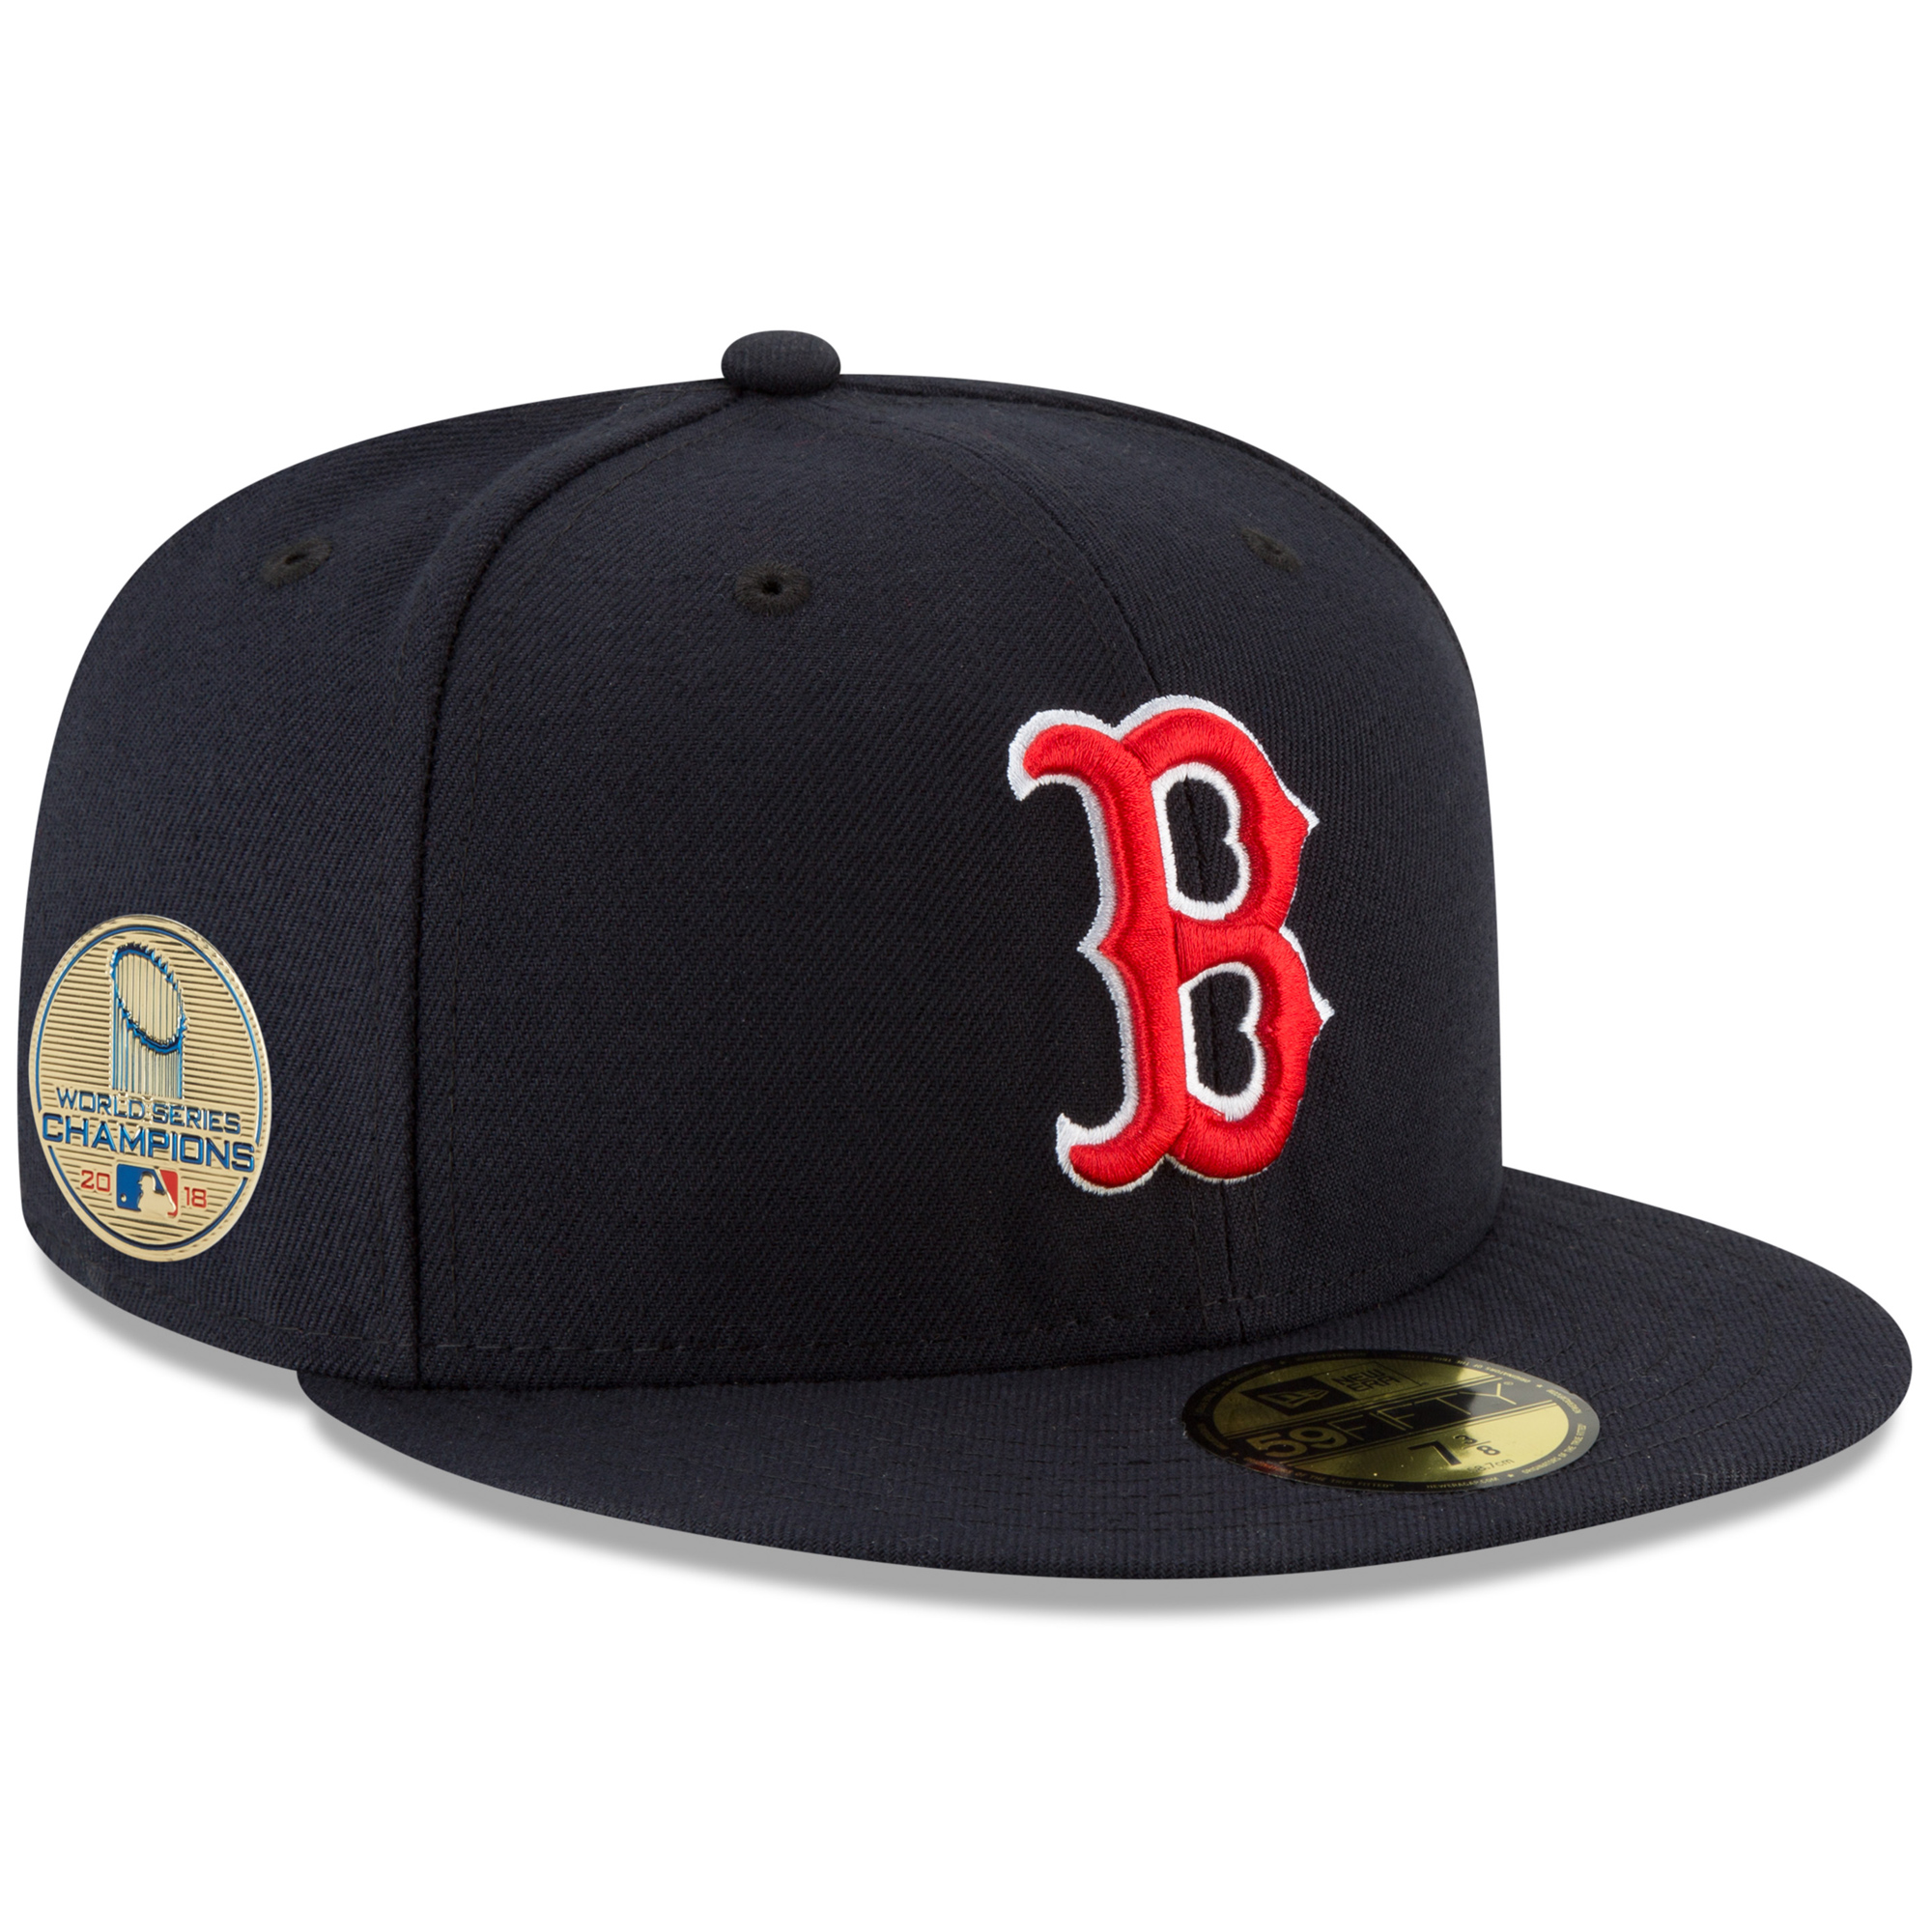 24af5758 Boston Red Sox Team Shop - Walmart.com